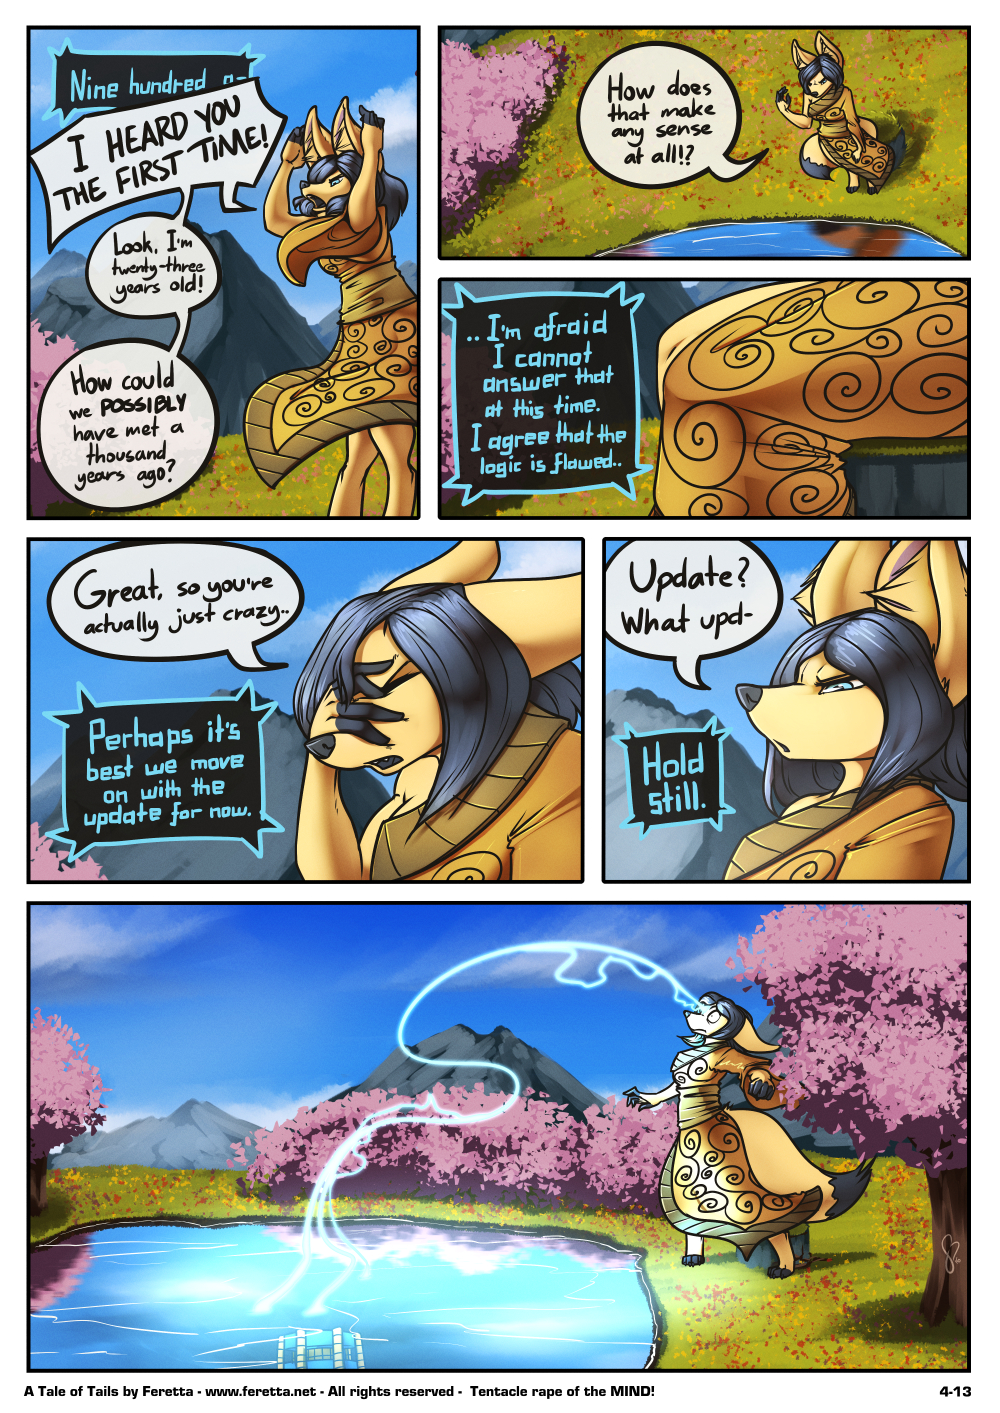 A Tale of Tails, 4-13